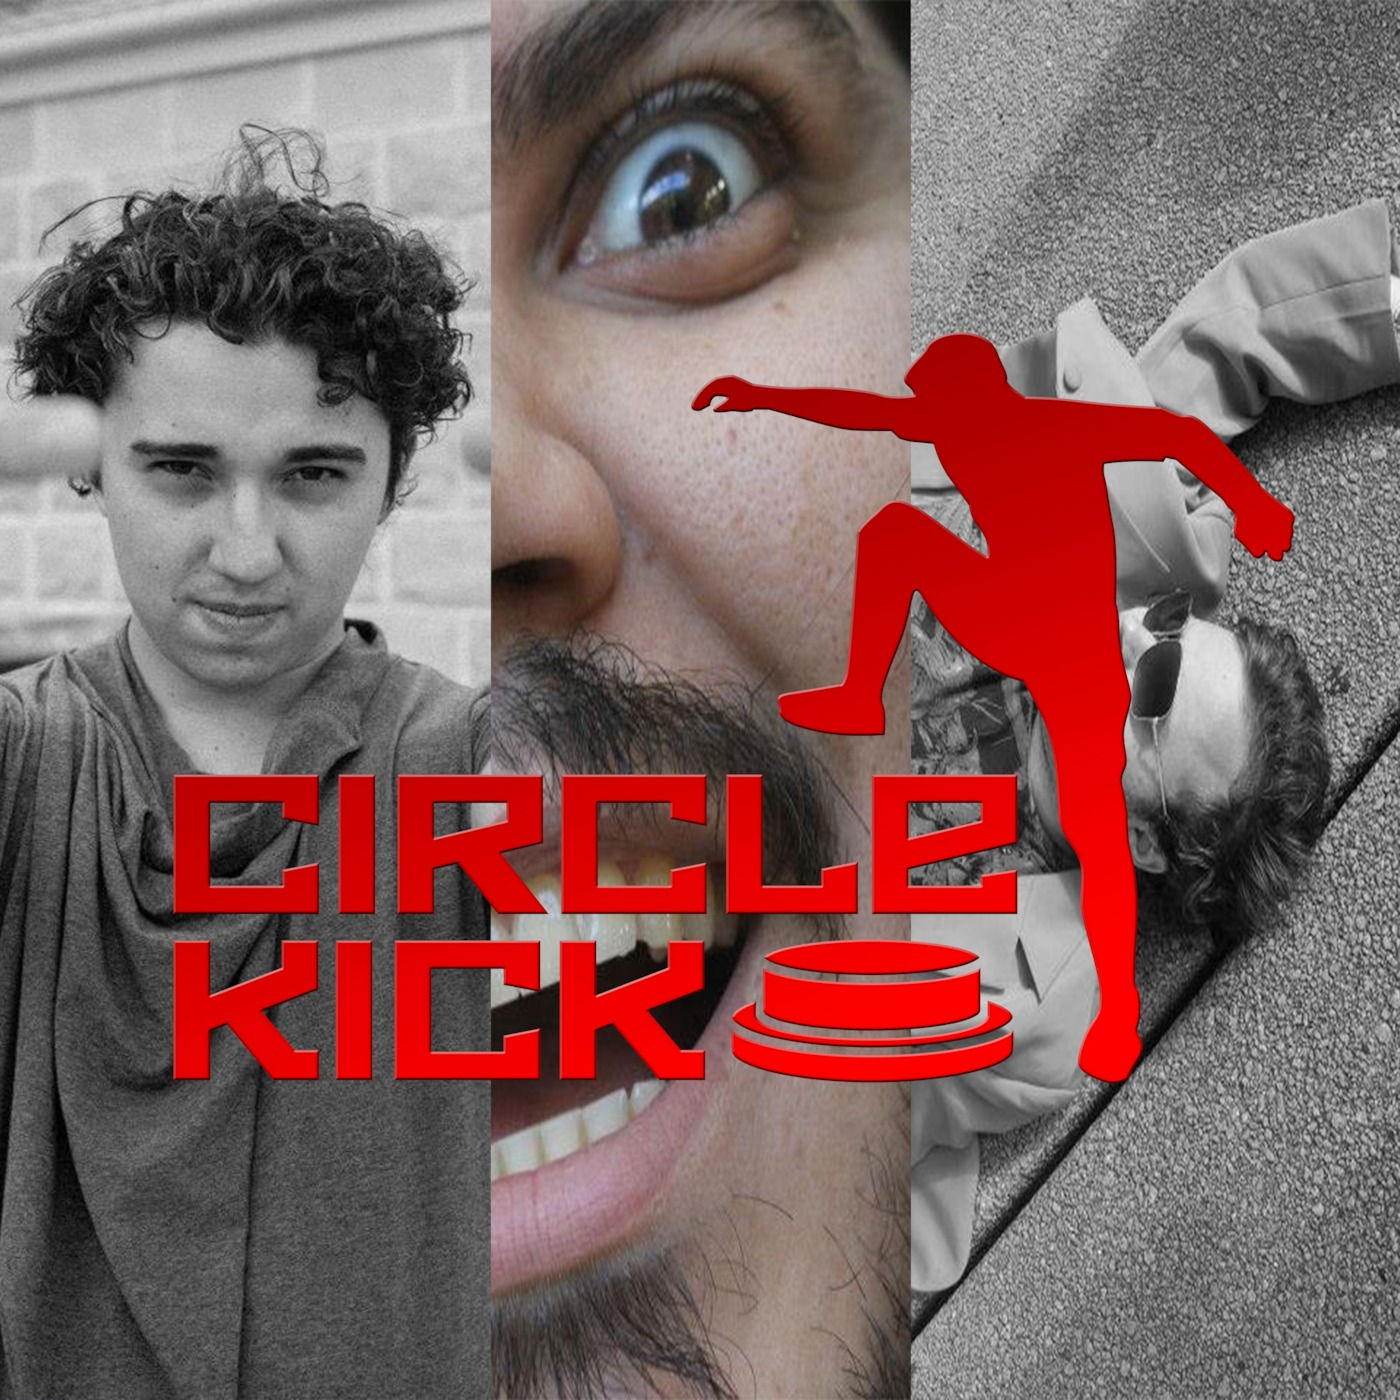 Circle Kick's Podcast